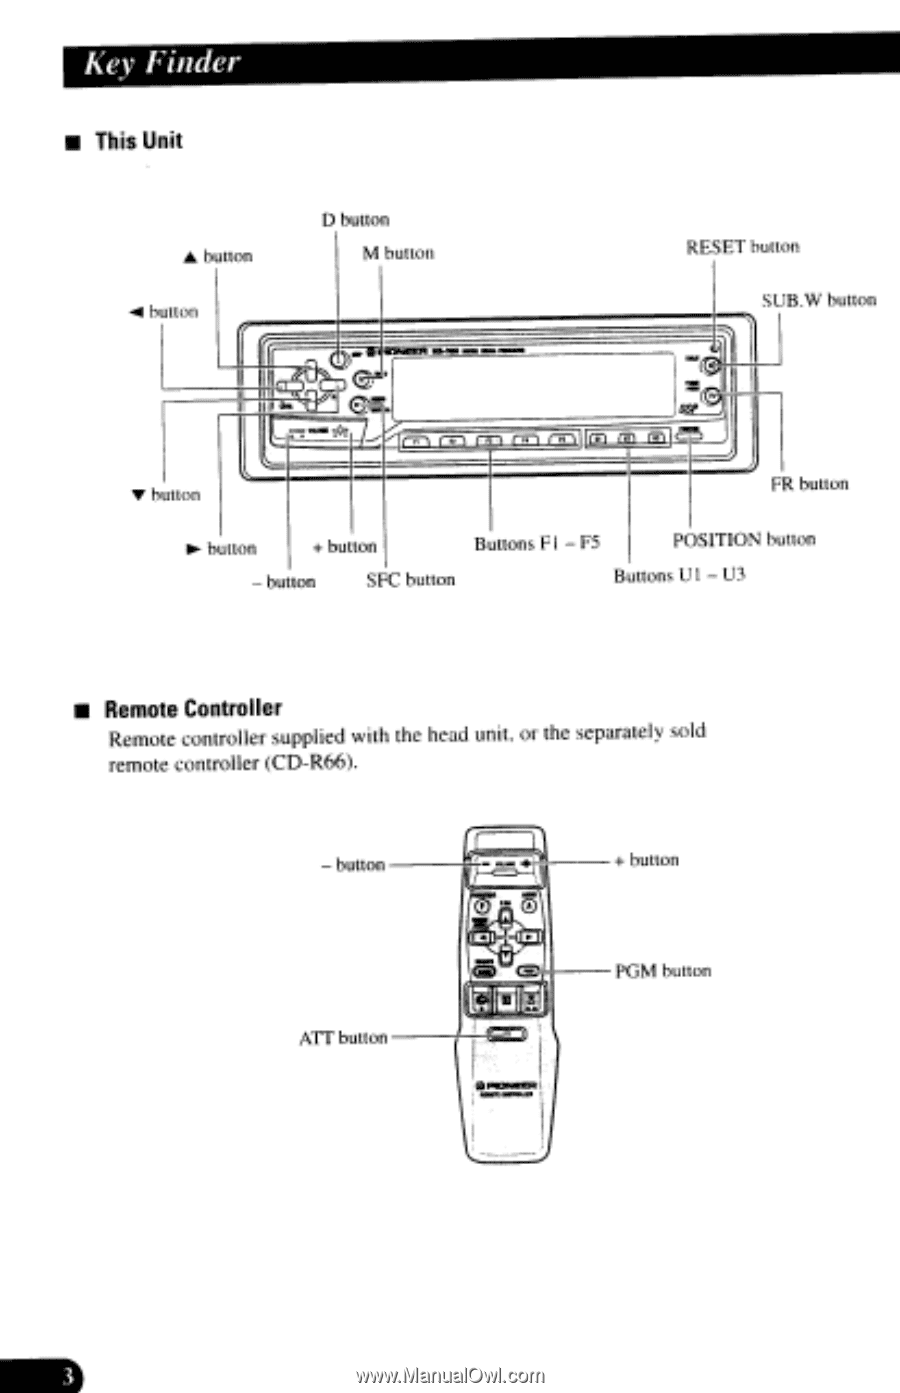 Pioneer Eq 6500 Wiring Diagram from www.manualowl.com